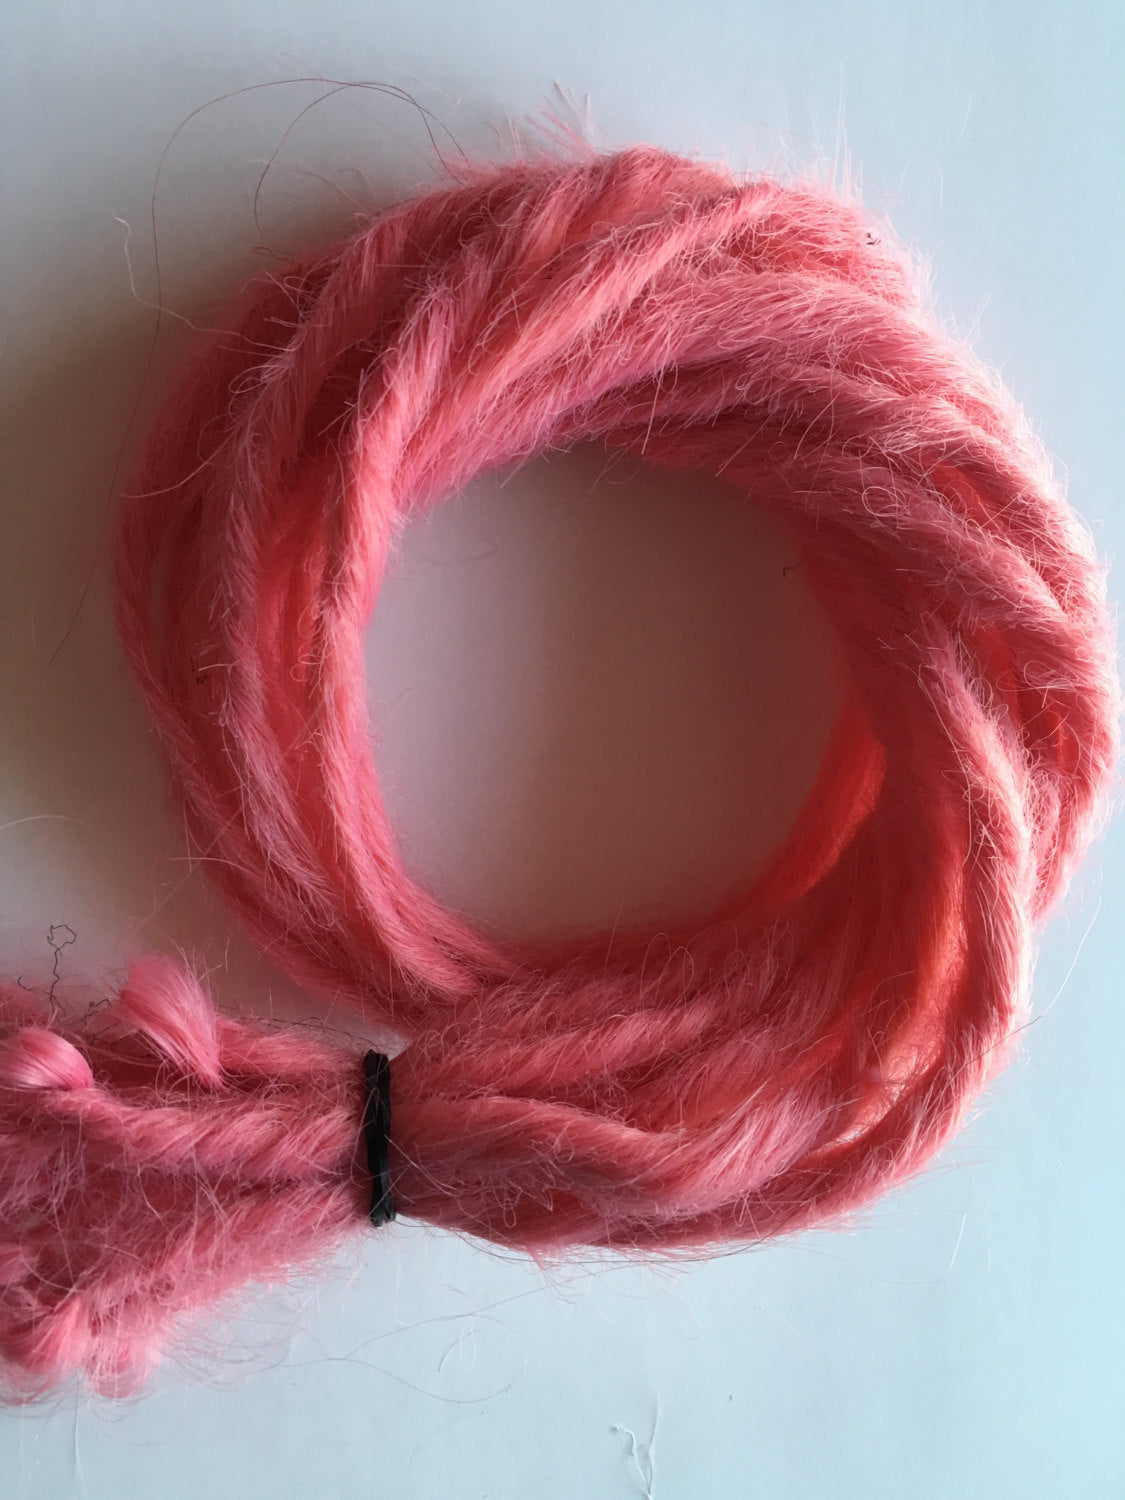 10 SE Synthetic Dreads Cotton Candy Bubblegum Carnation Pink Dreadlock Hair Extensions